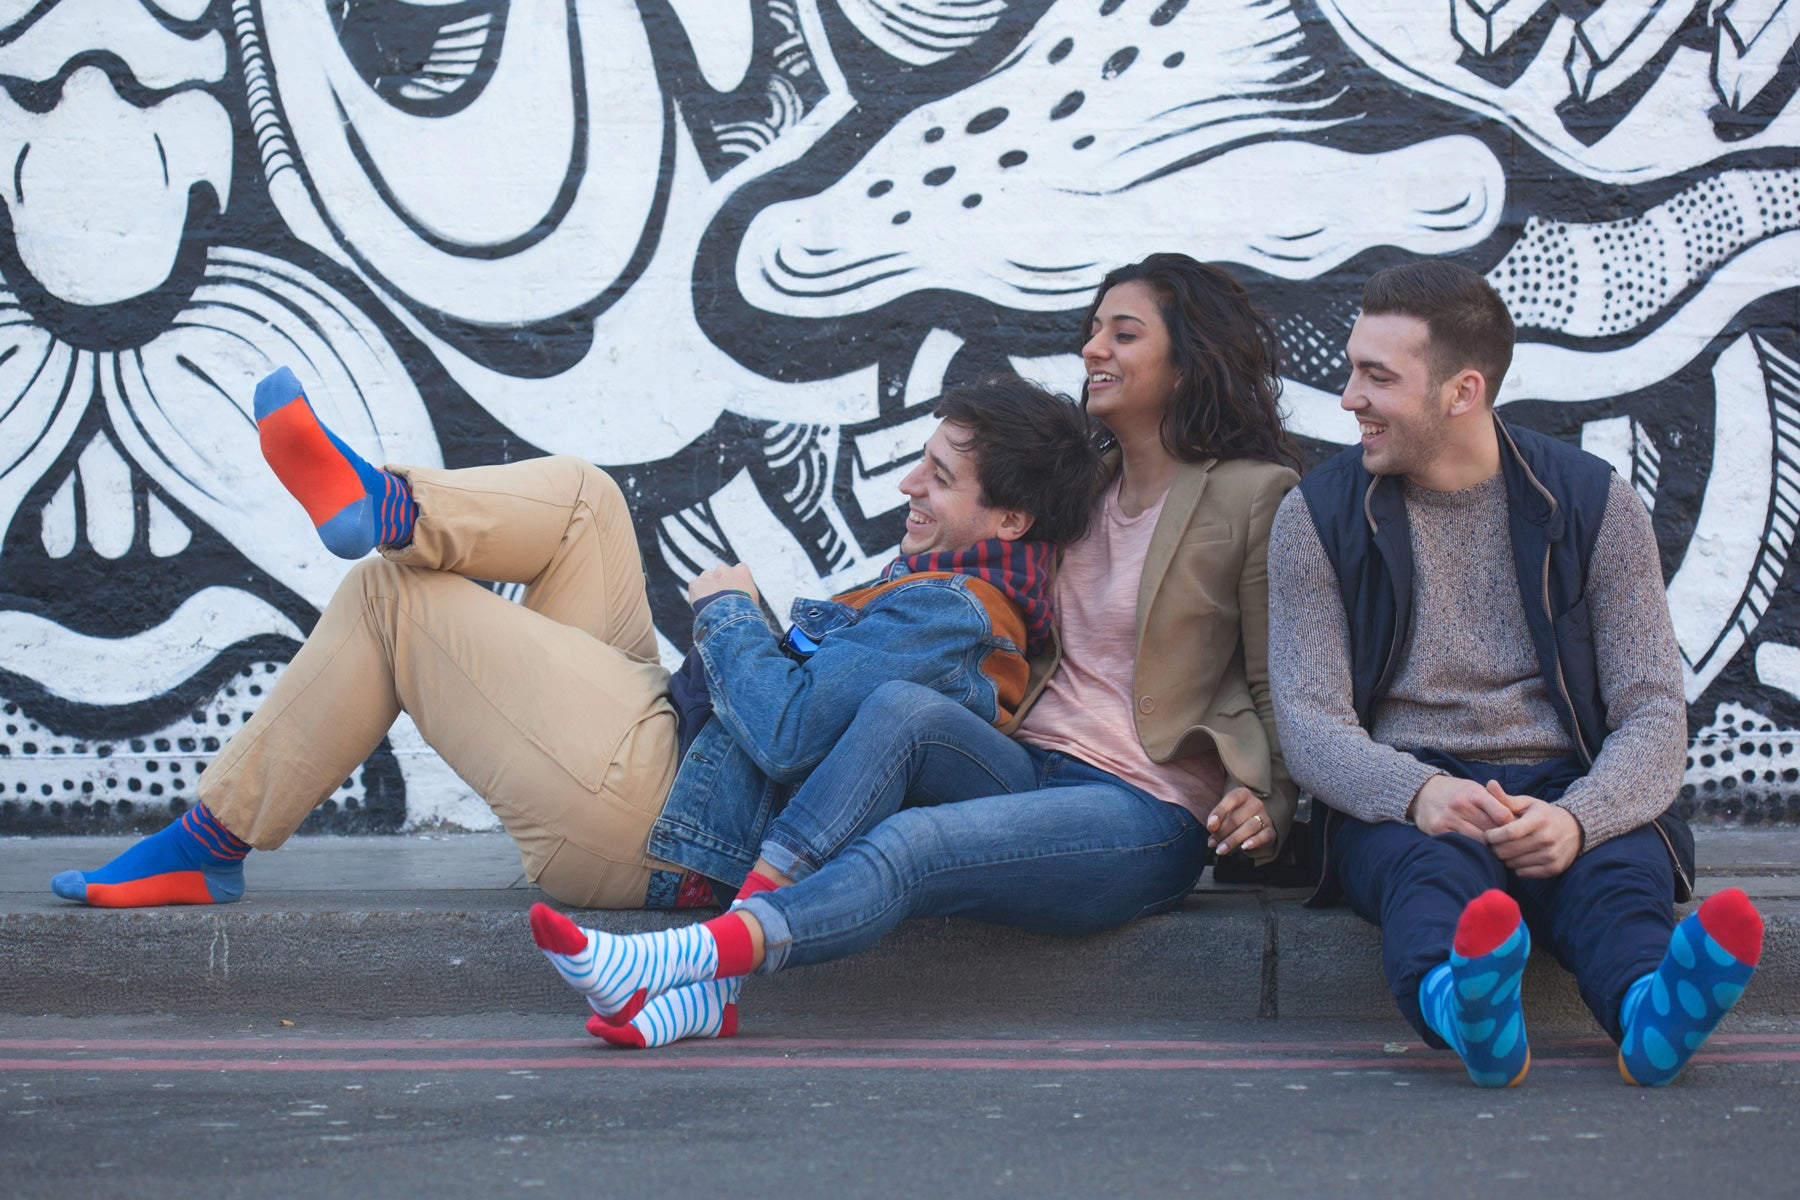 Friends wearing Lookmate socks sitting at the curb